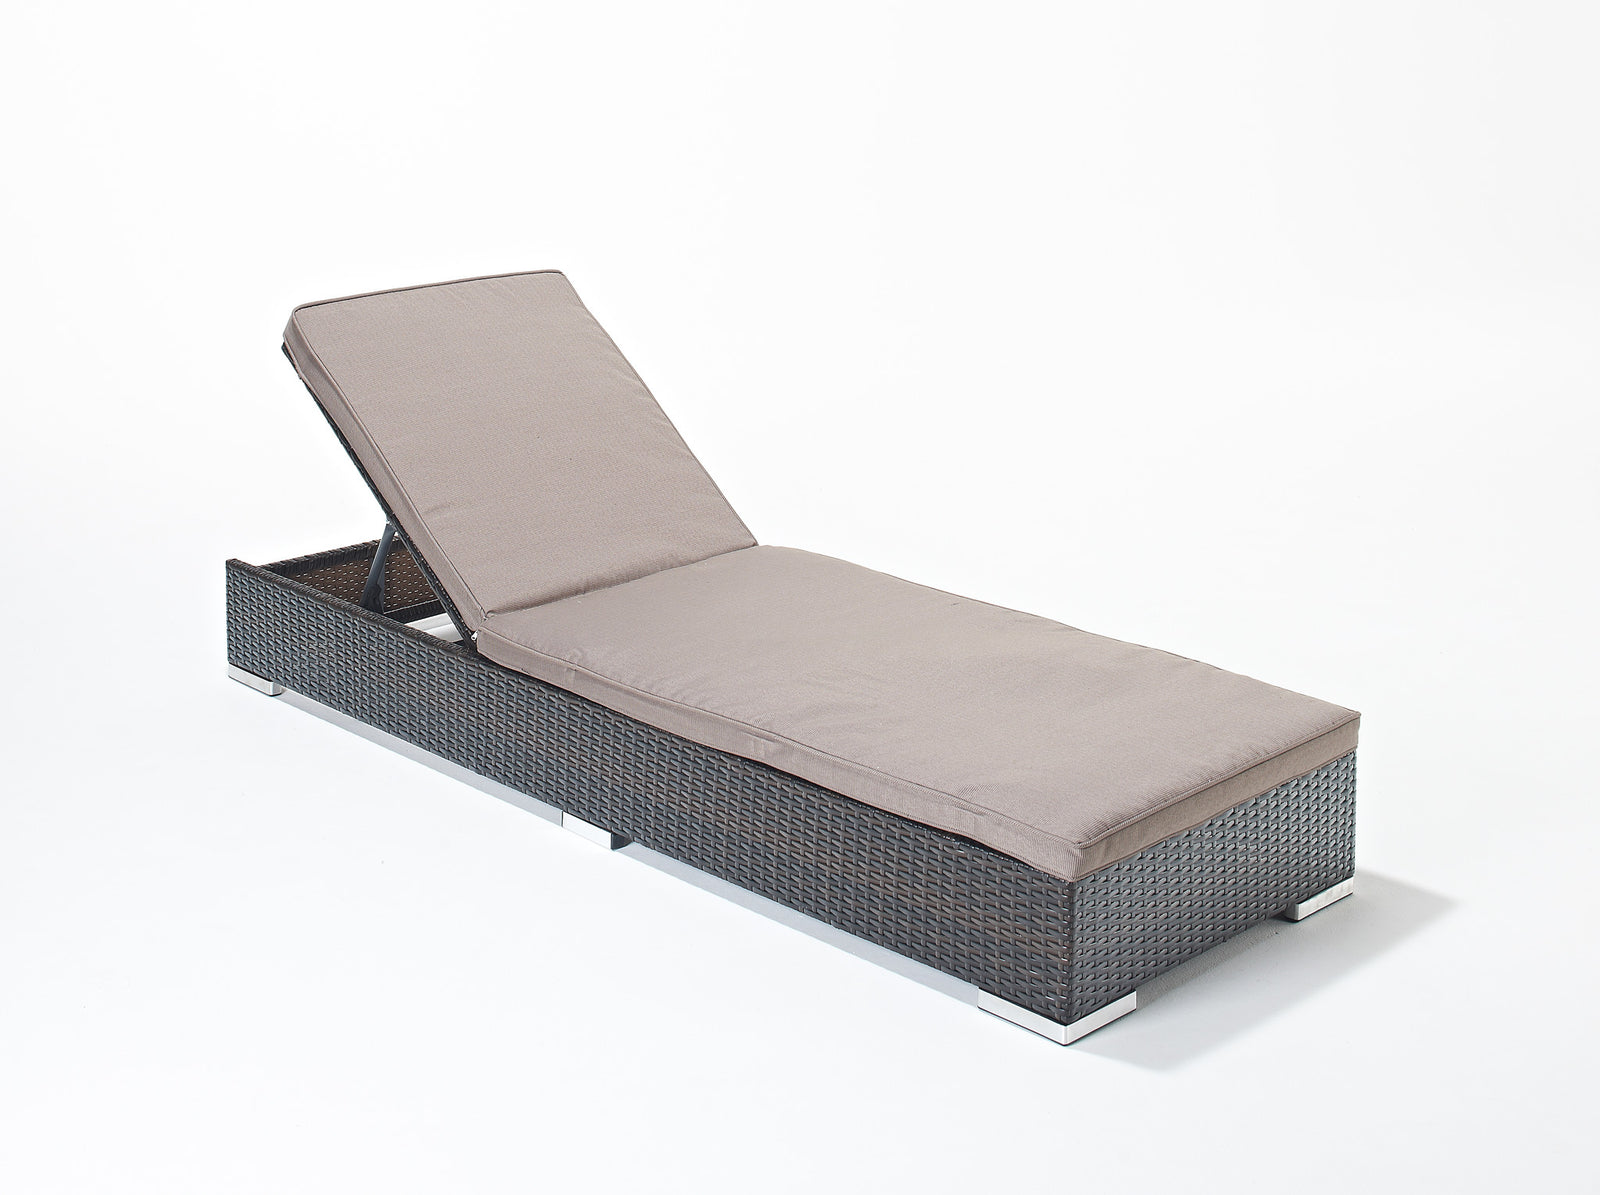 Port Royal Luxe flat Lounger